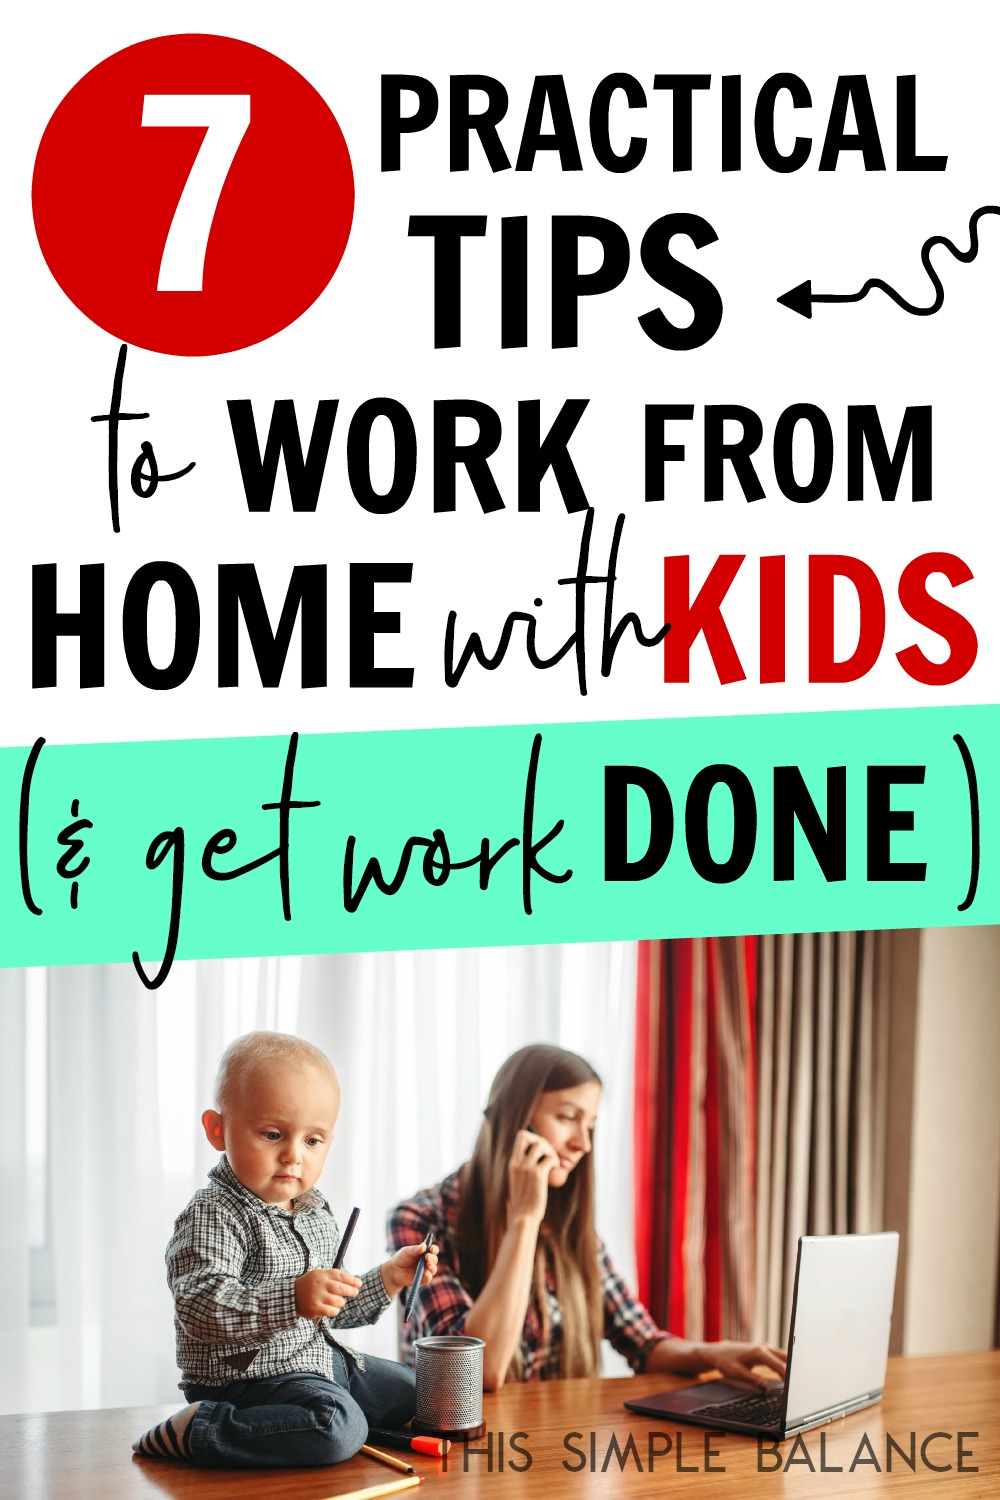 Is working from home with kids impossible? While it might feel that way, work from home moms CAN get stuff done with children around. Use these 7 tips to make it happen!